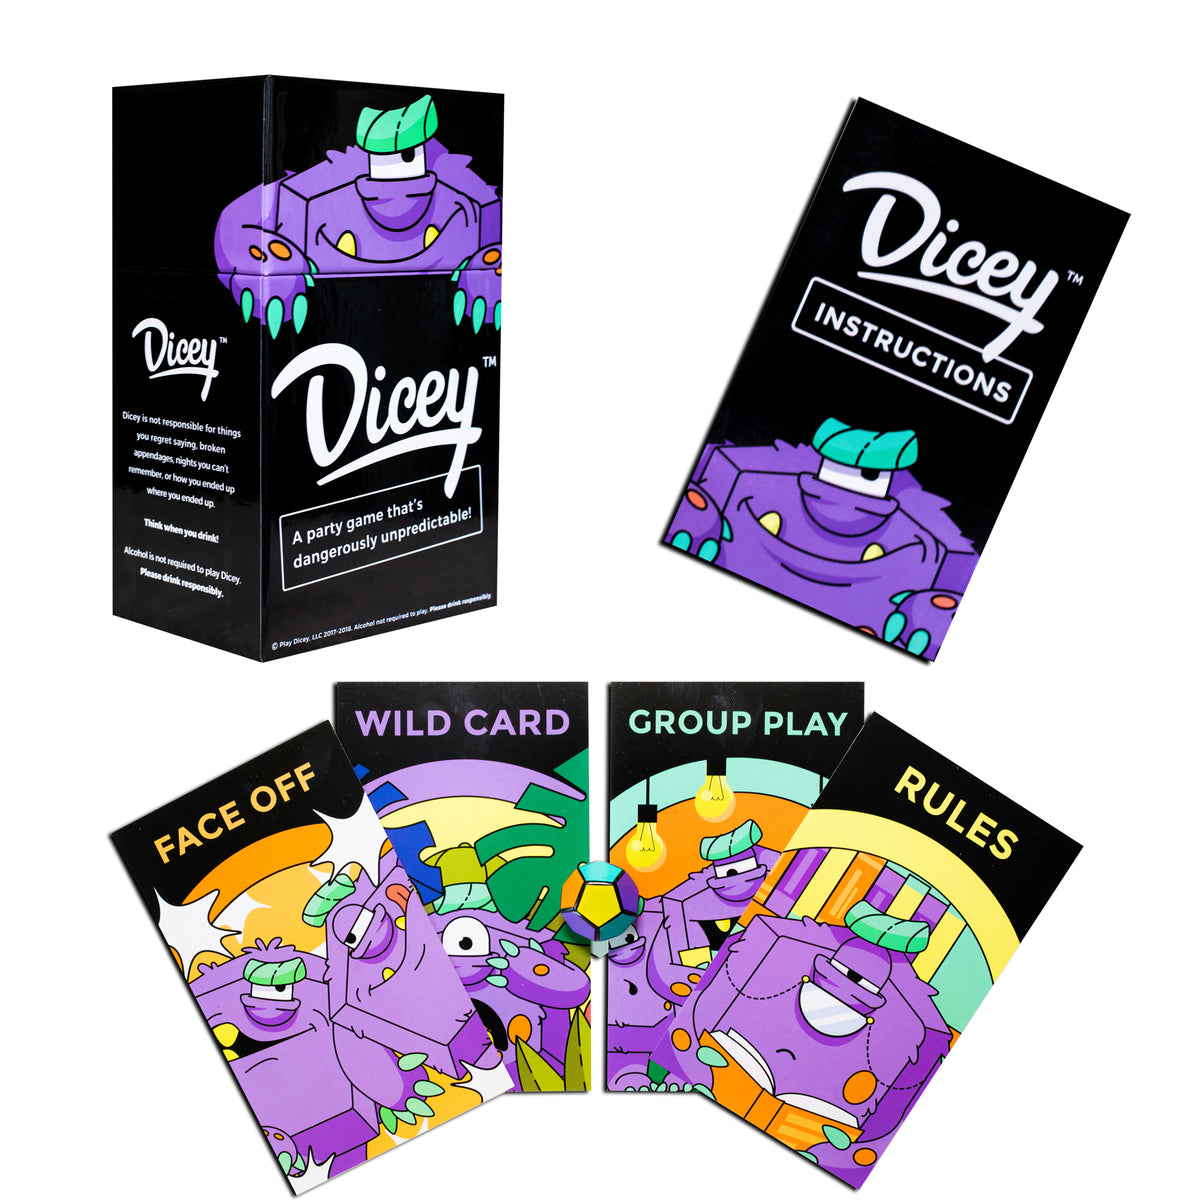 DICEY - Dicey Drinking Game - Adult Party Games - Mini Games - Drinking Games - Dicey New Drinking Game - The New Standard For Drinking Games And Party Games - Barstool Sports Big Brain Finalist